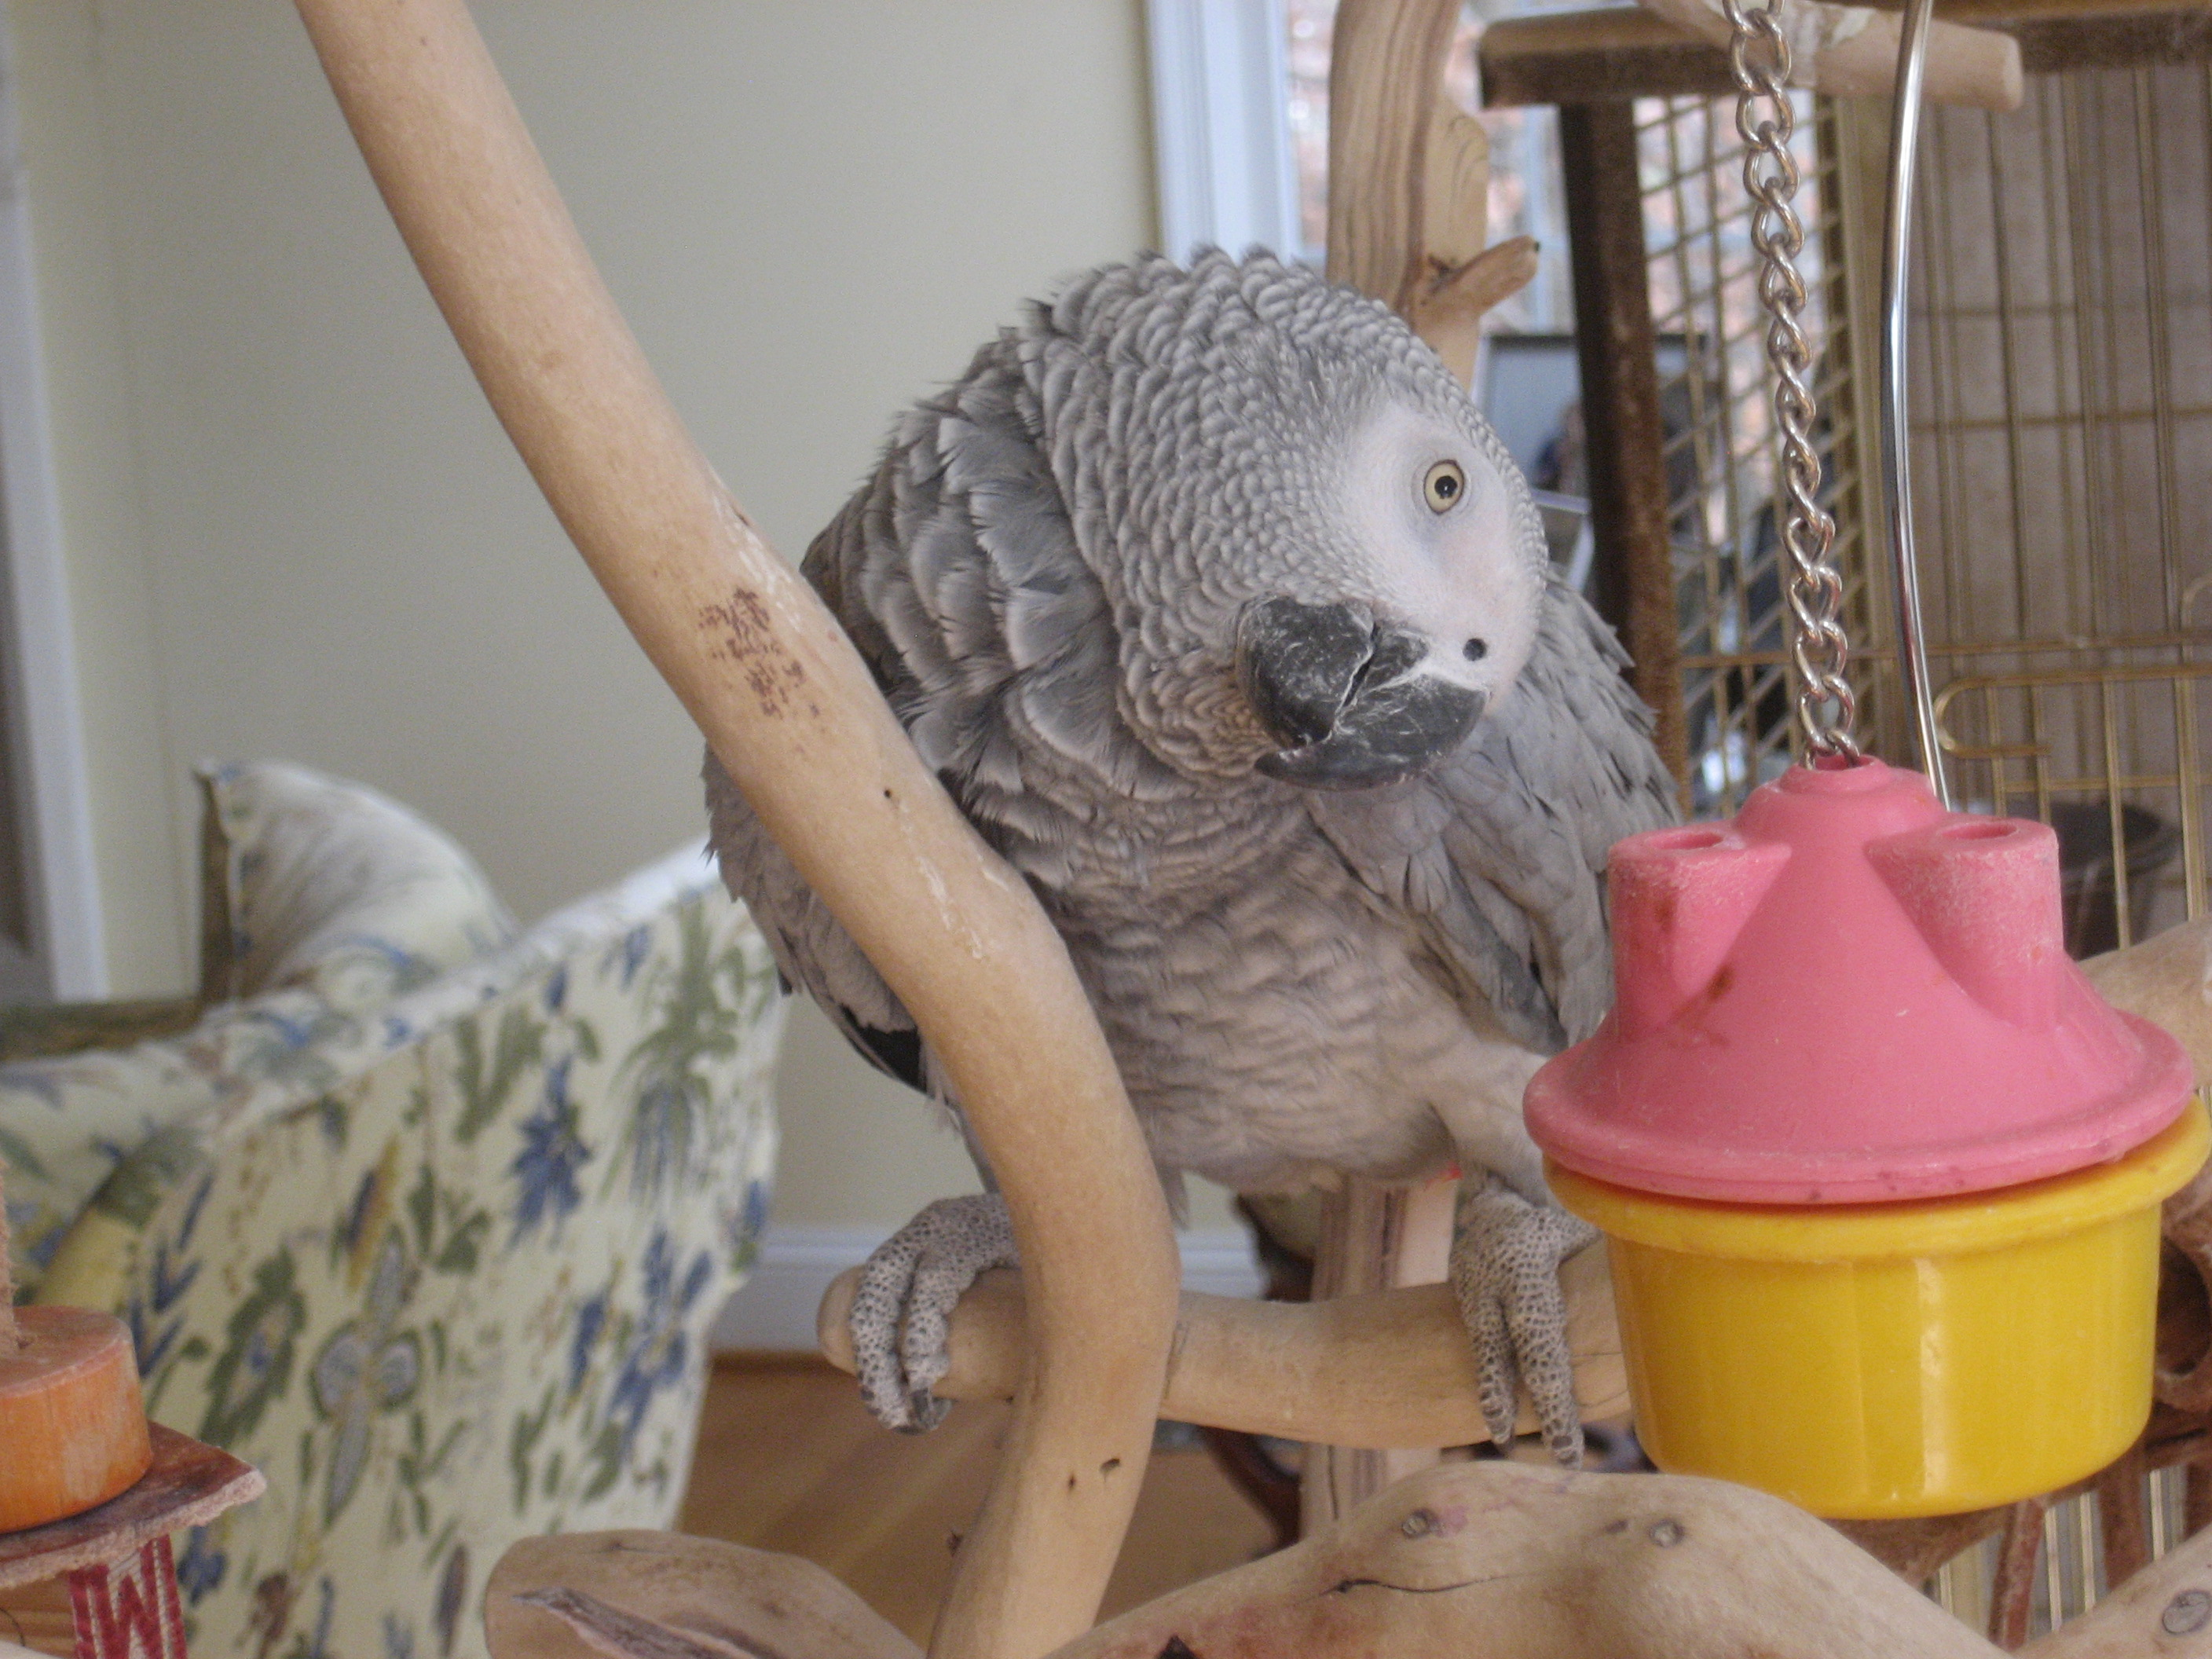 Graycie, our African Gray